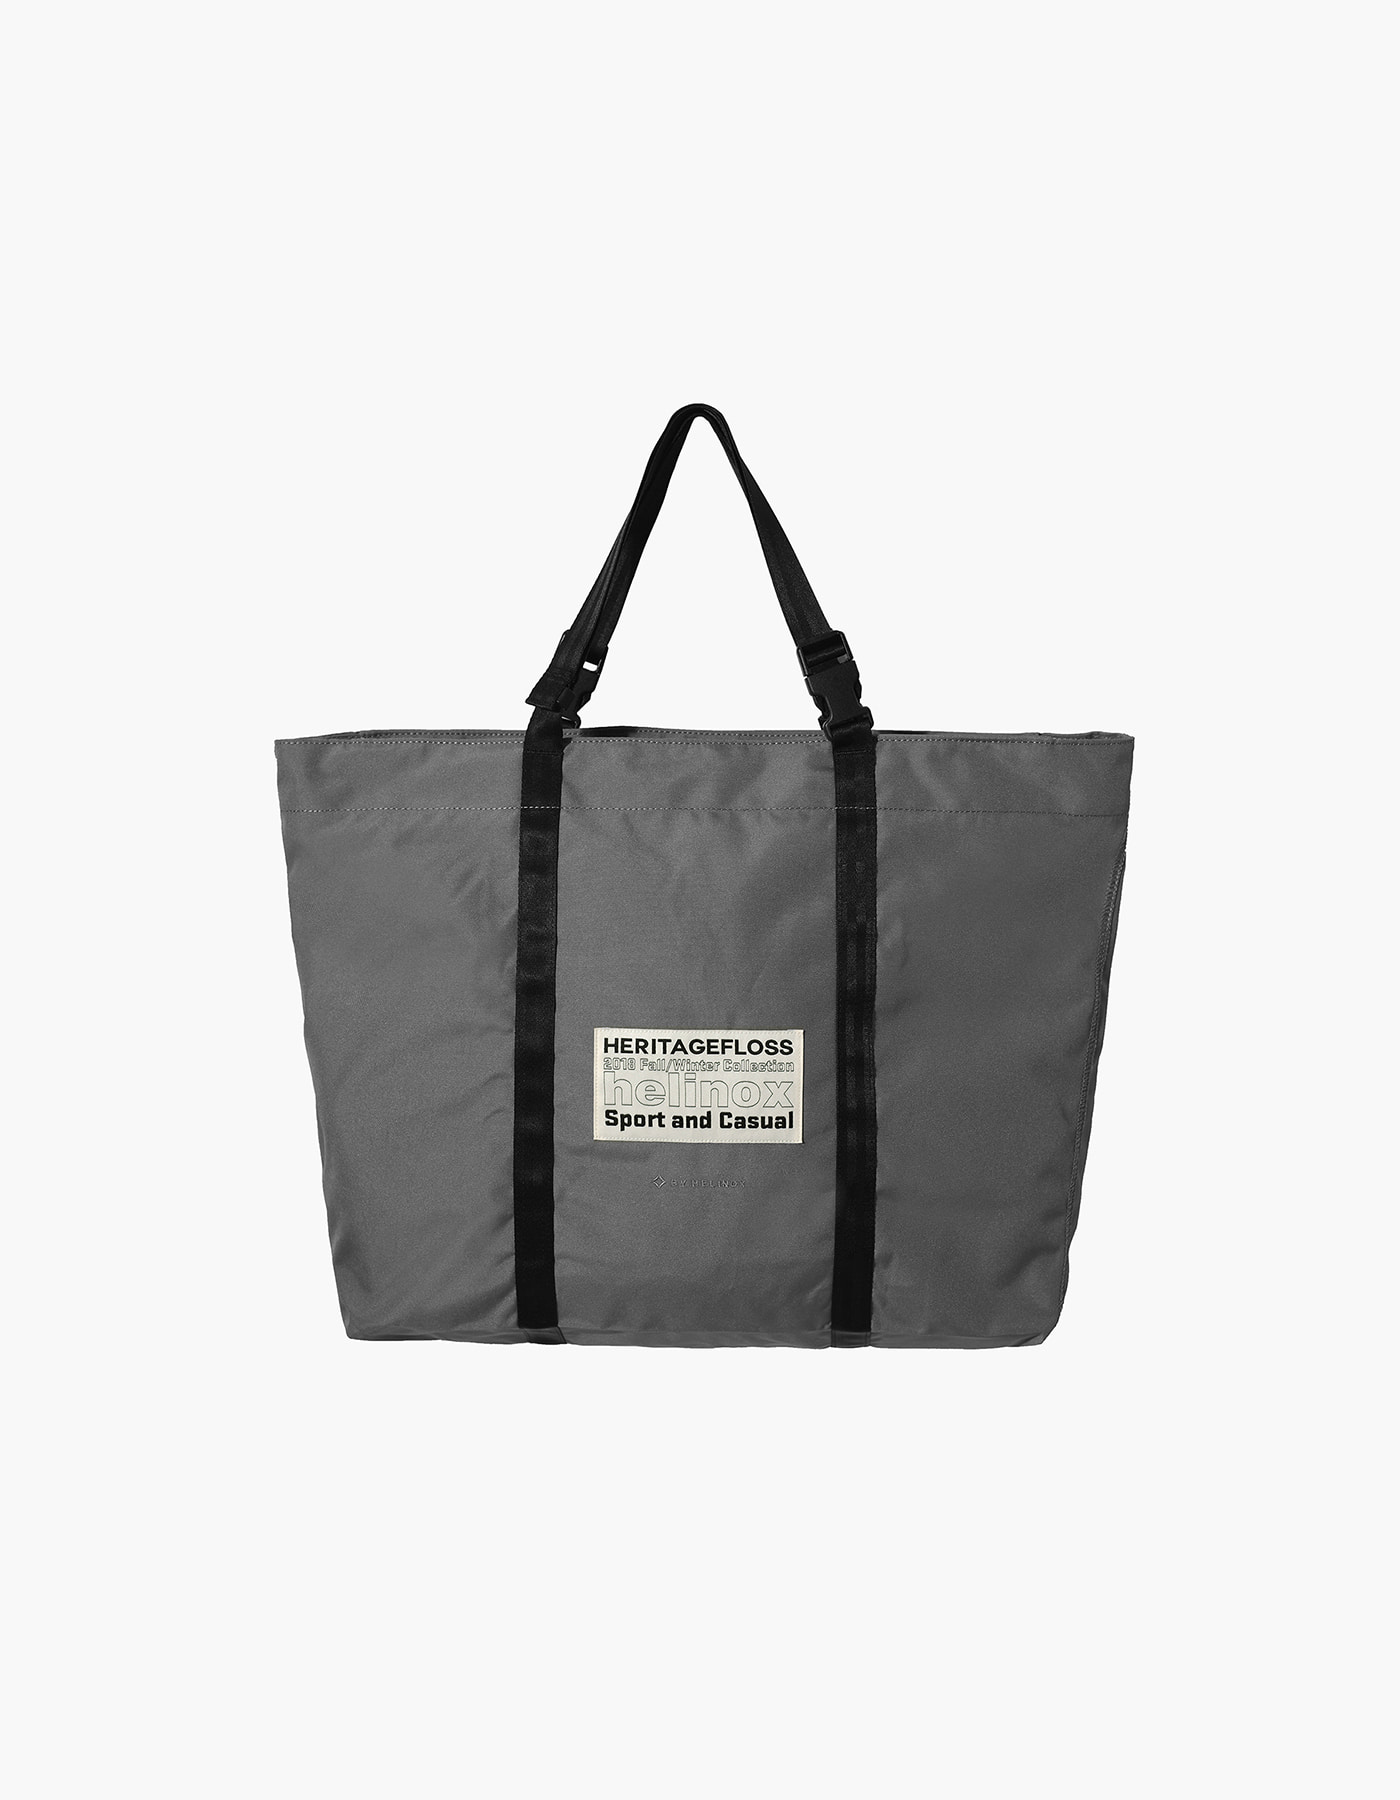 HELINOX X HERITAGEFLOSS TOTE BAG / FOLIAGE GREEN